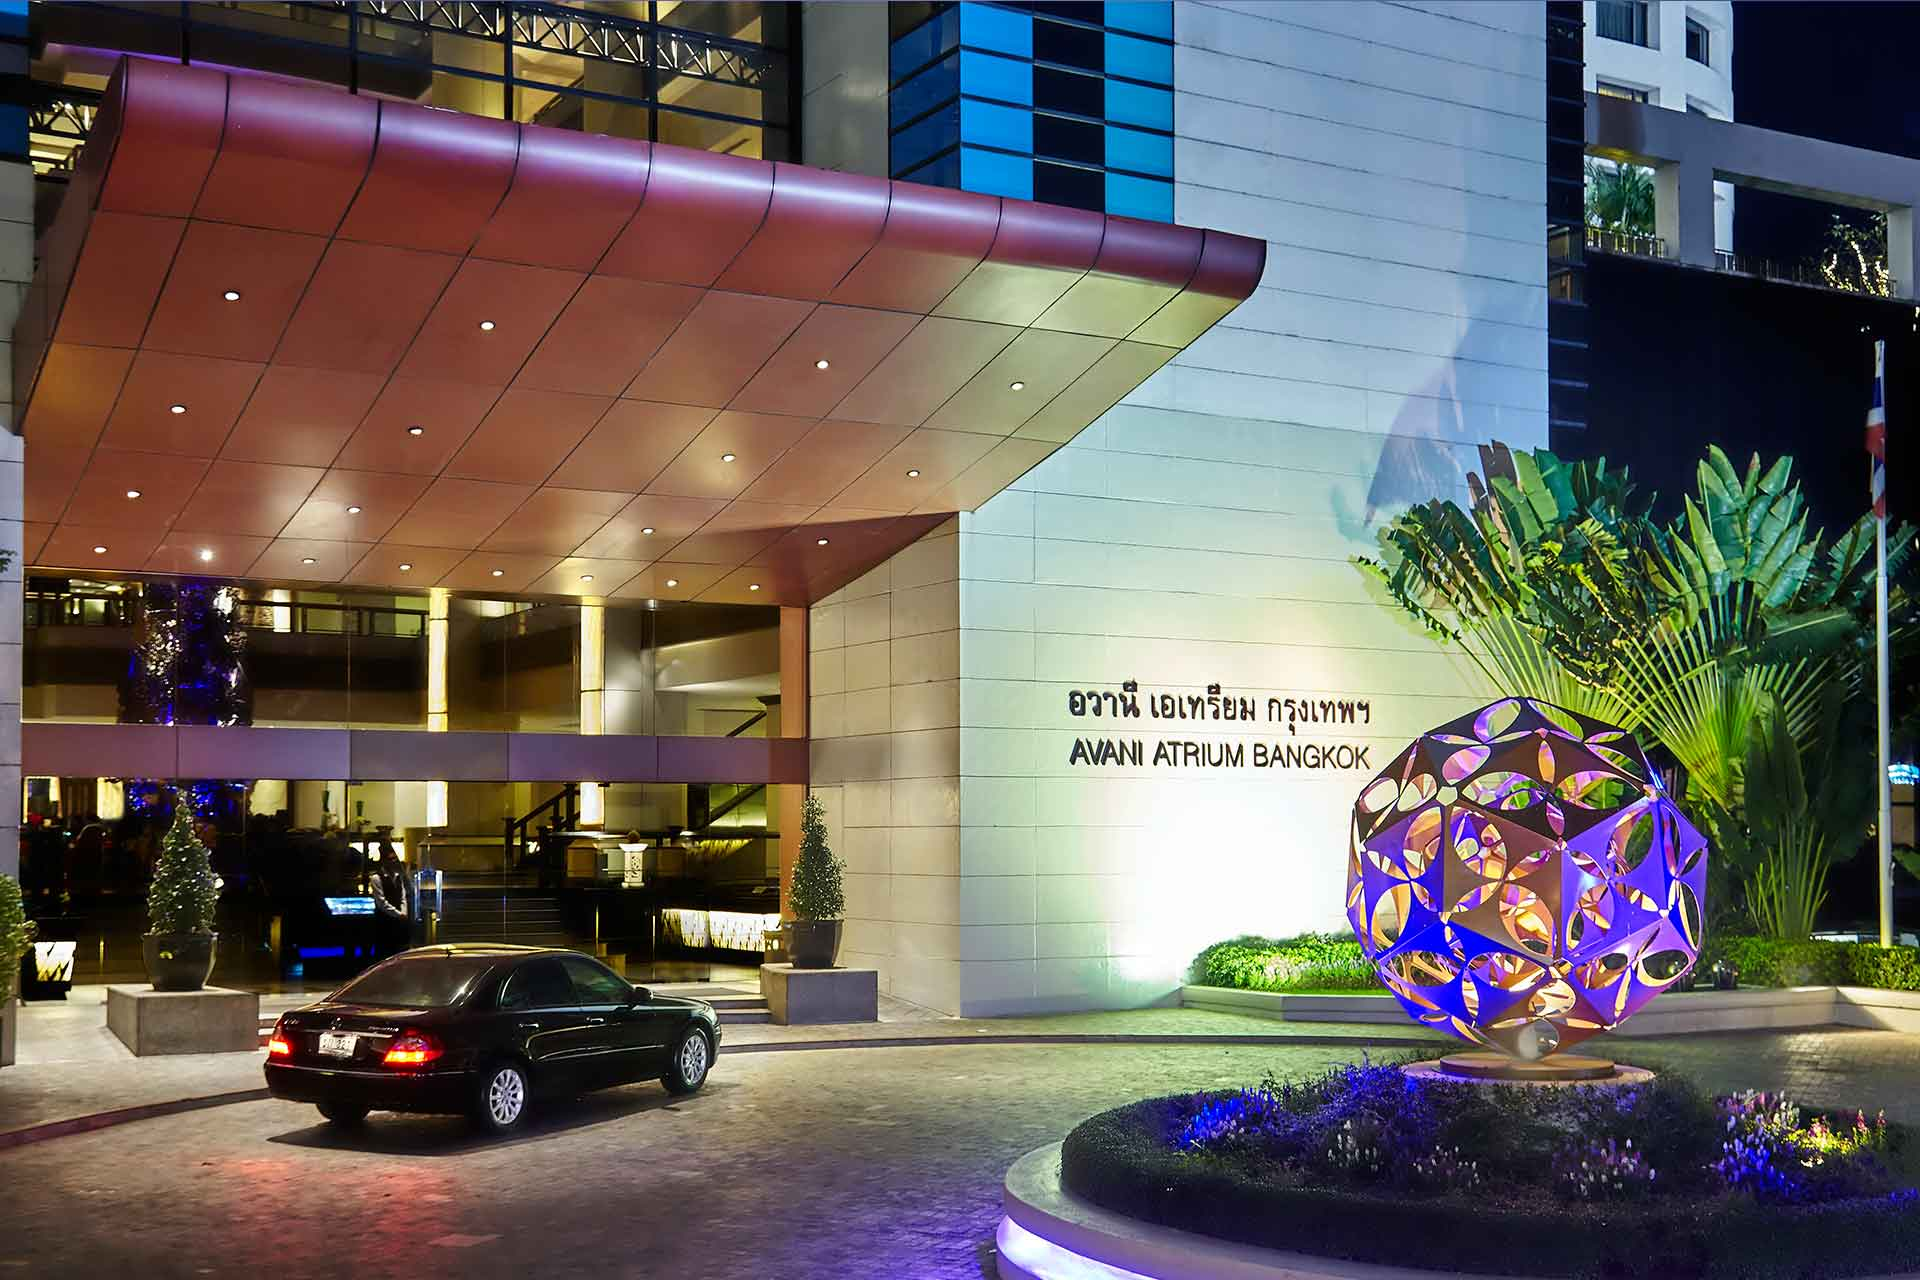 Main entrance of AVANI Atrium Bangkok